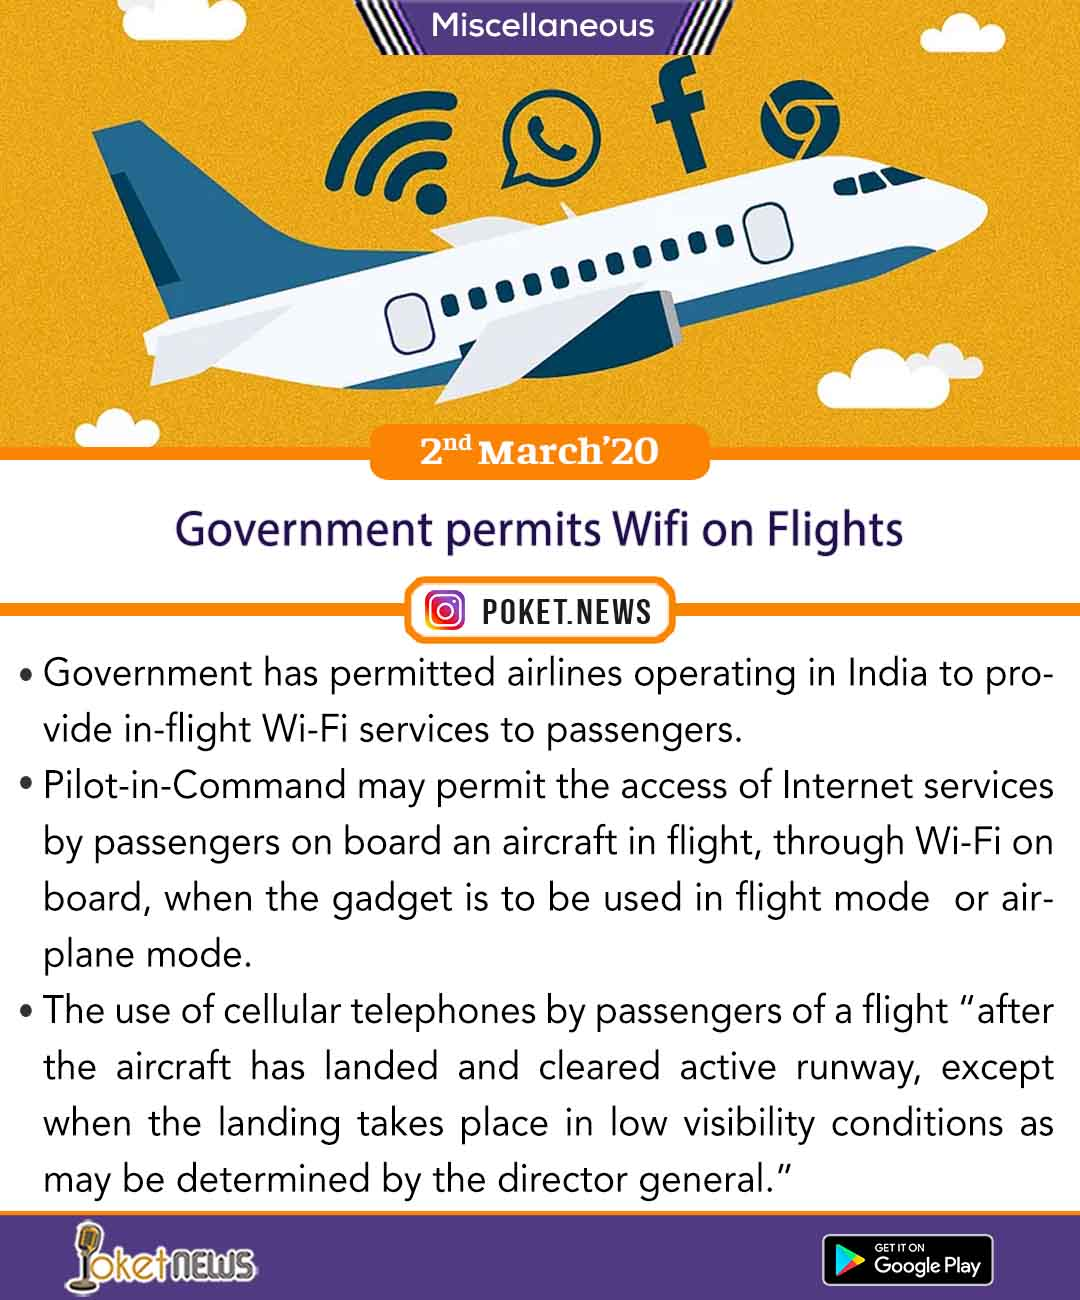 Government permits Wifi on Flights